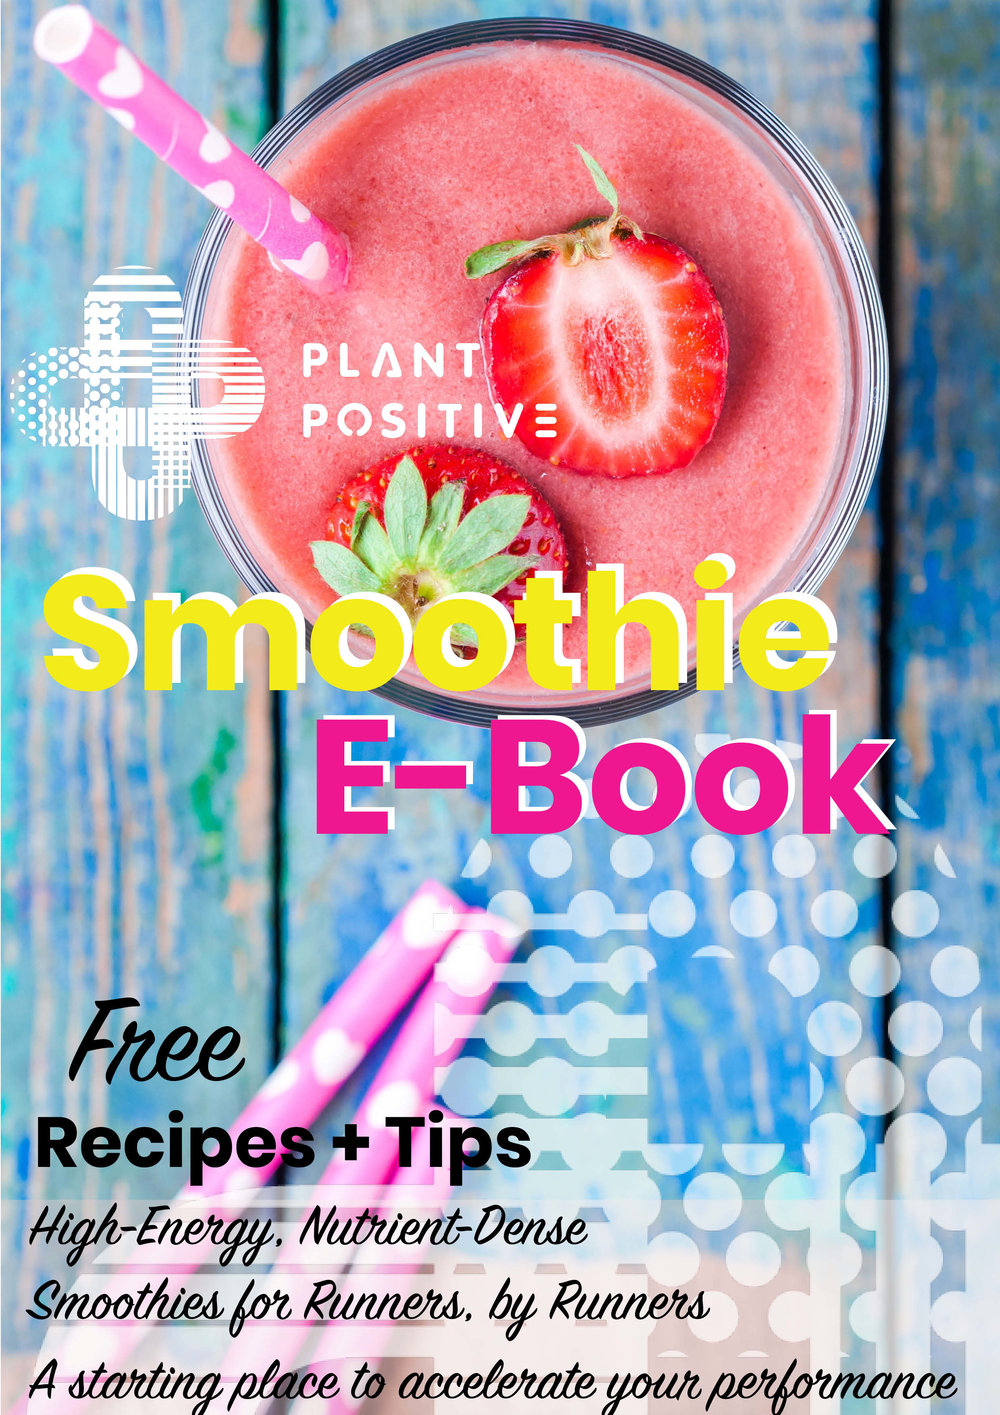 Cover-Smoothie-Ebook-PlantPositiveRunning-11-10-17.jpg